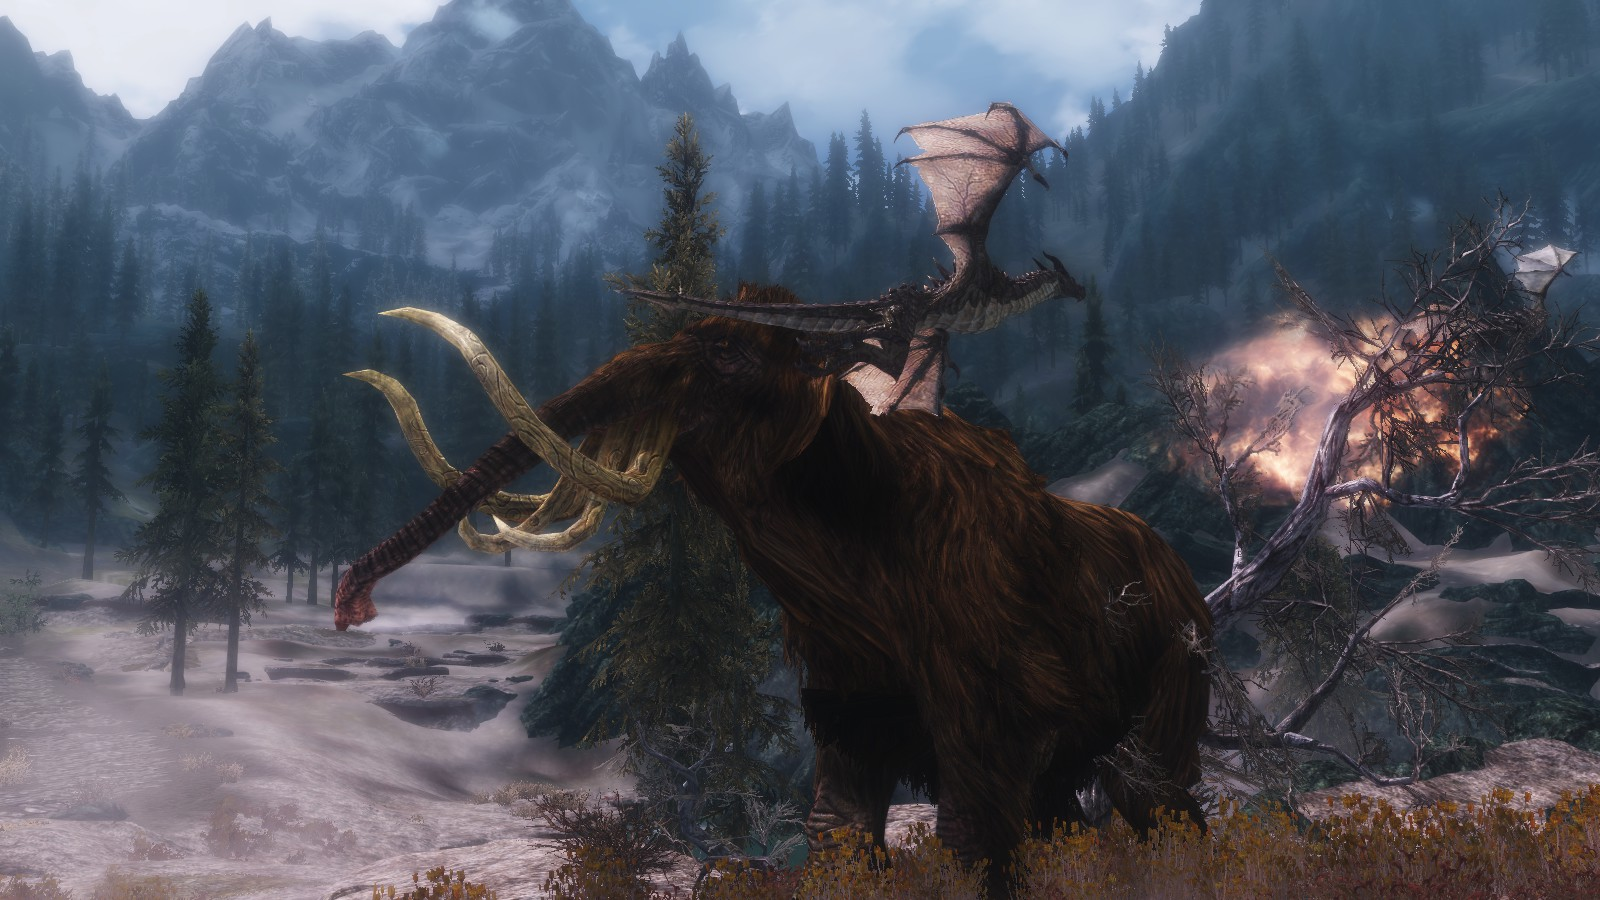 Baby dragon vs mammoth